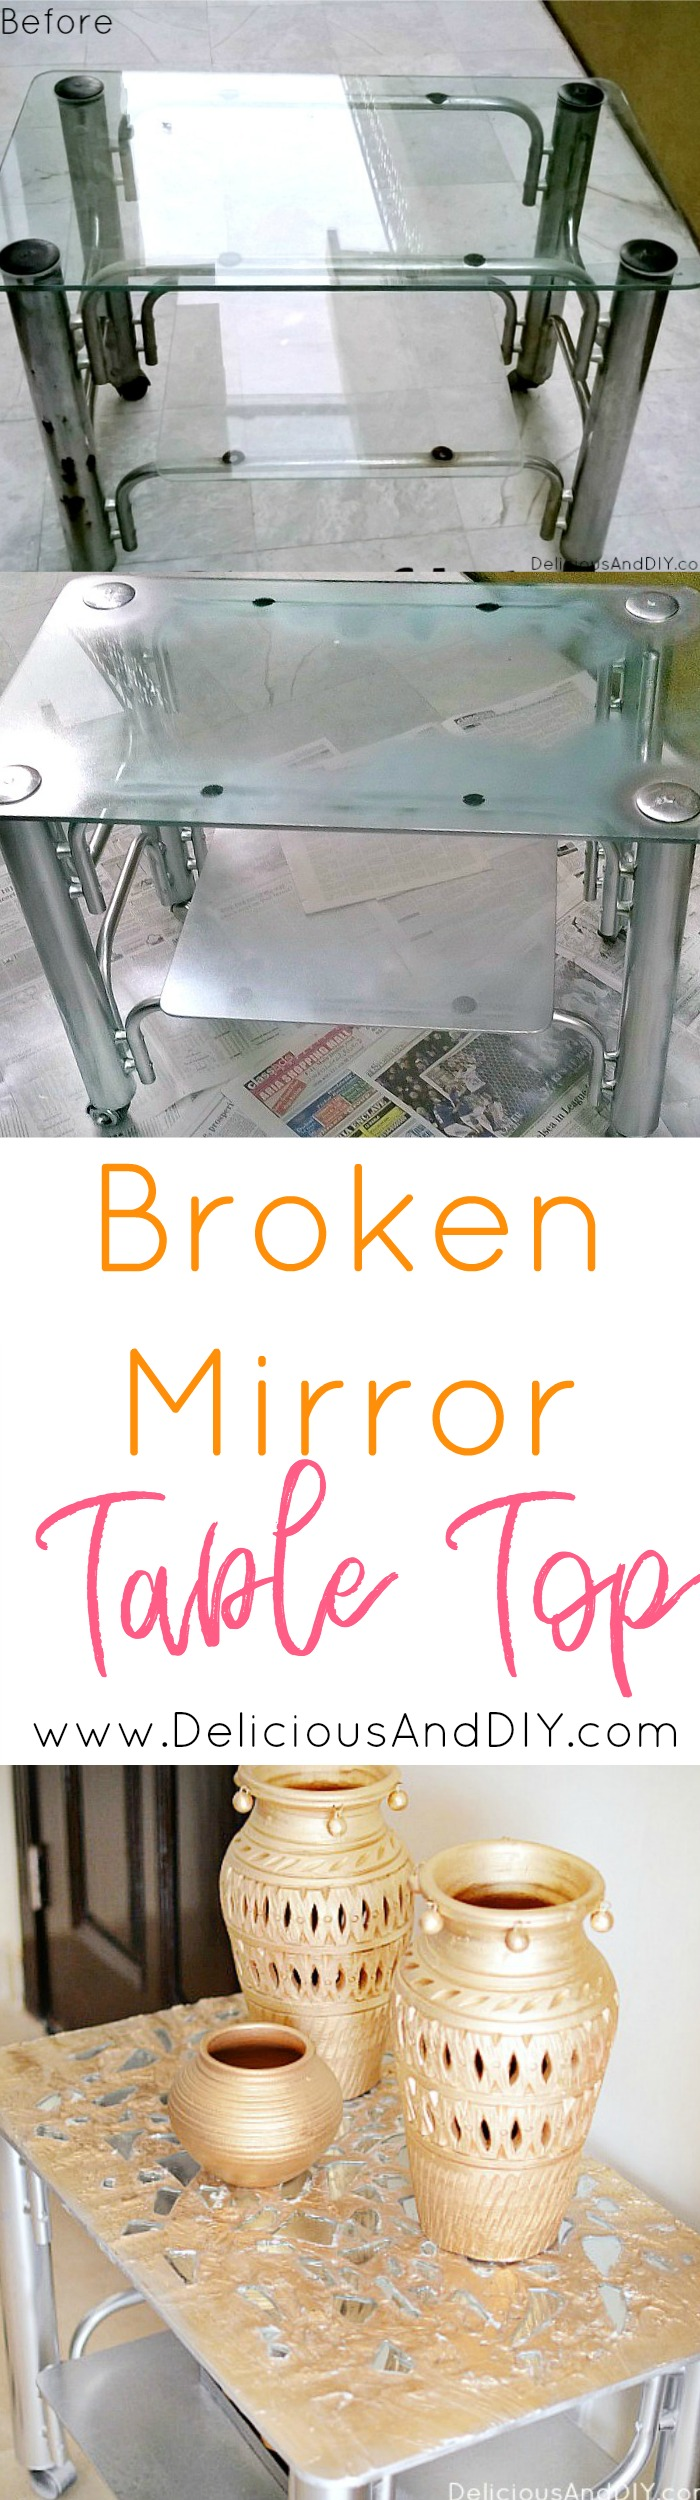 Transform a dated TV Trolley into this glam piece of art using pieces of broken mirror| Table Makeover from Drab to Glam| Furniture Makeover| Home Decor| DIY Crafts| Broken Mirror Projects| Grout Project| Mosaic Table Makeover| Before and After Furniture